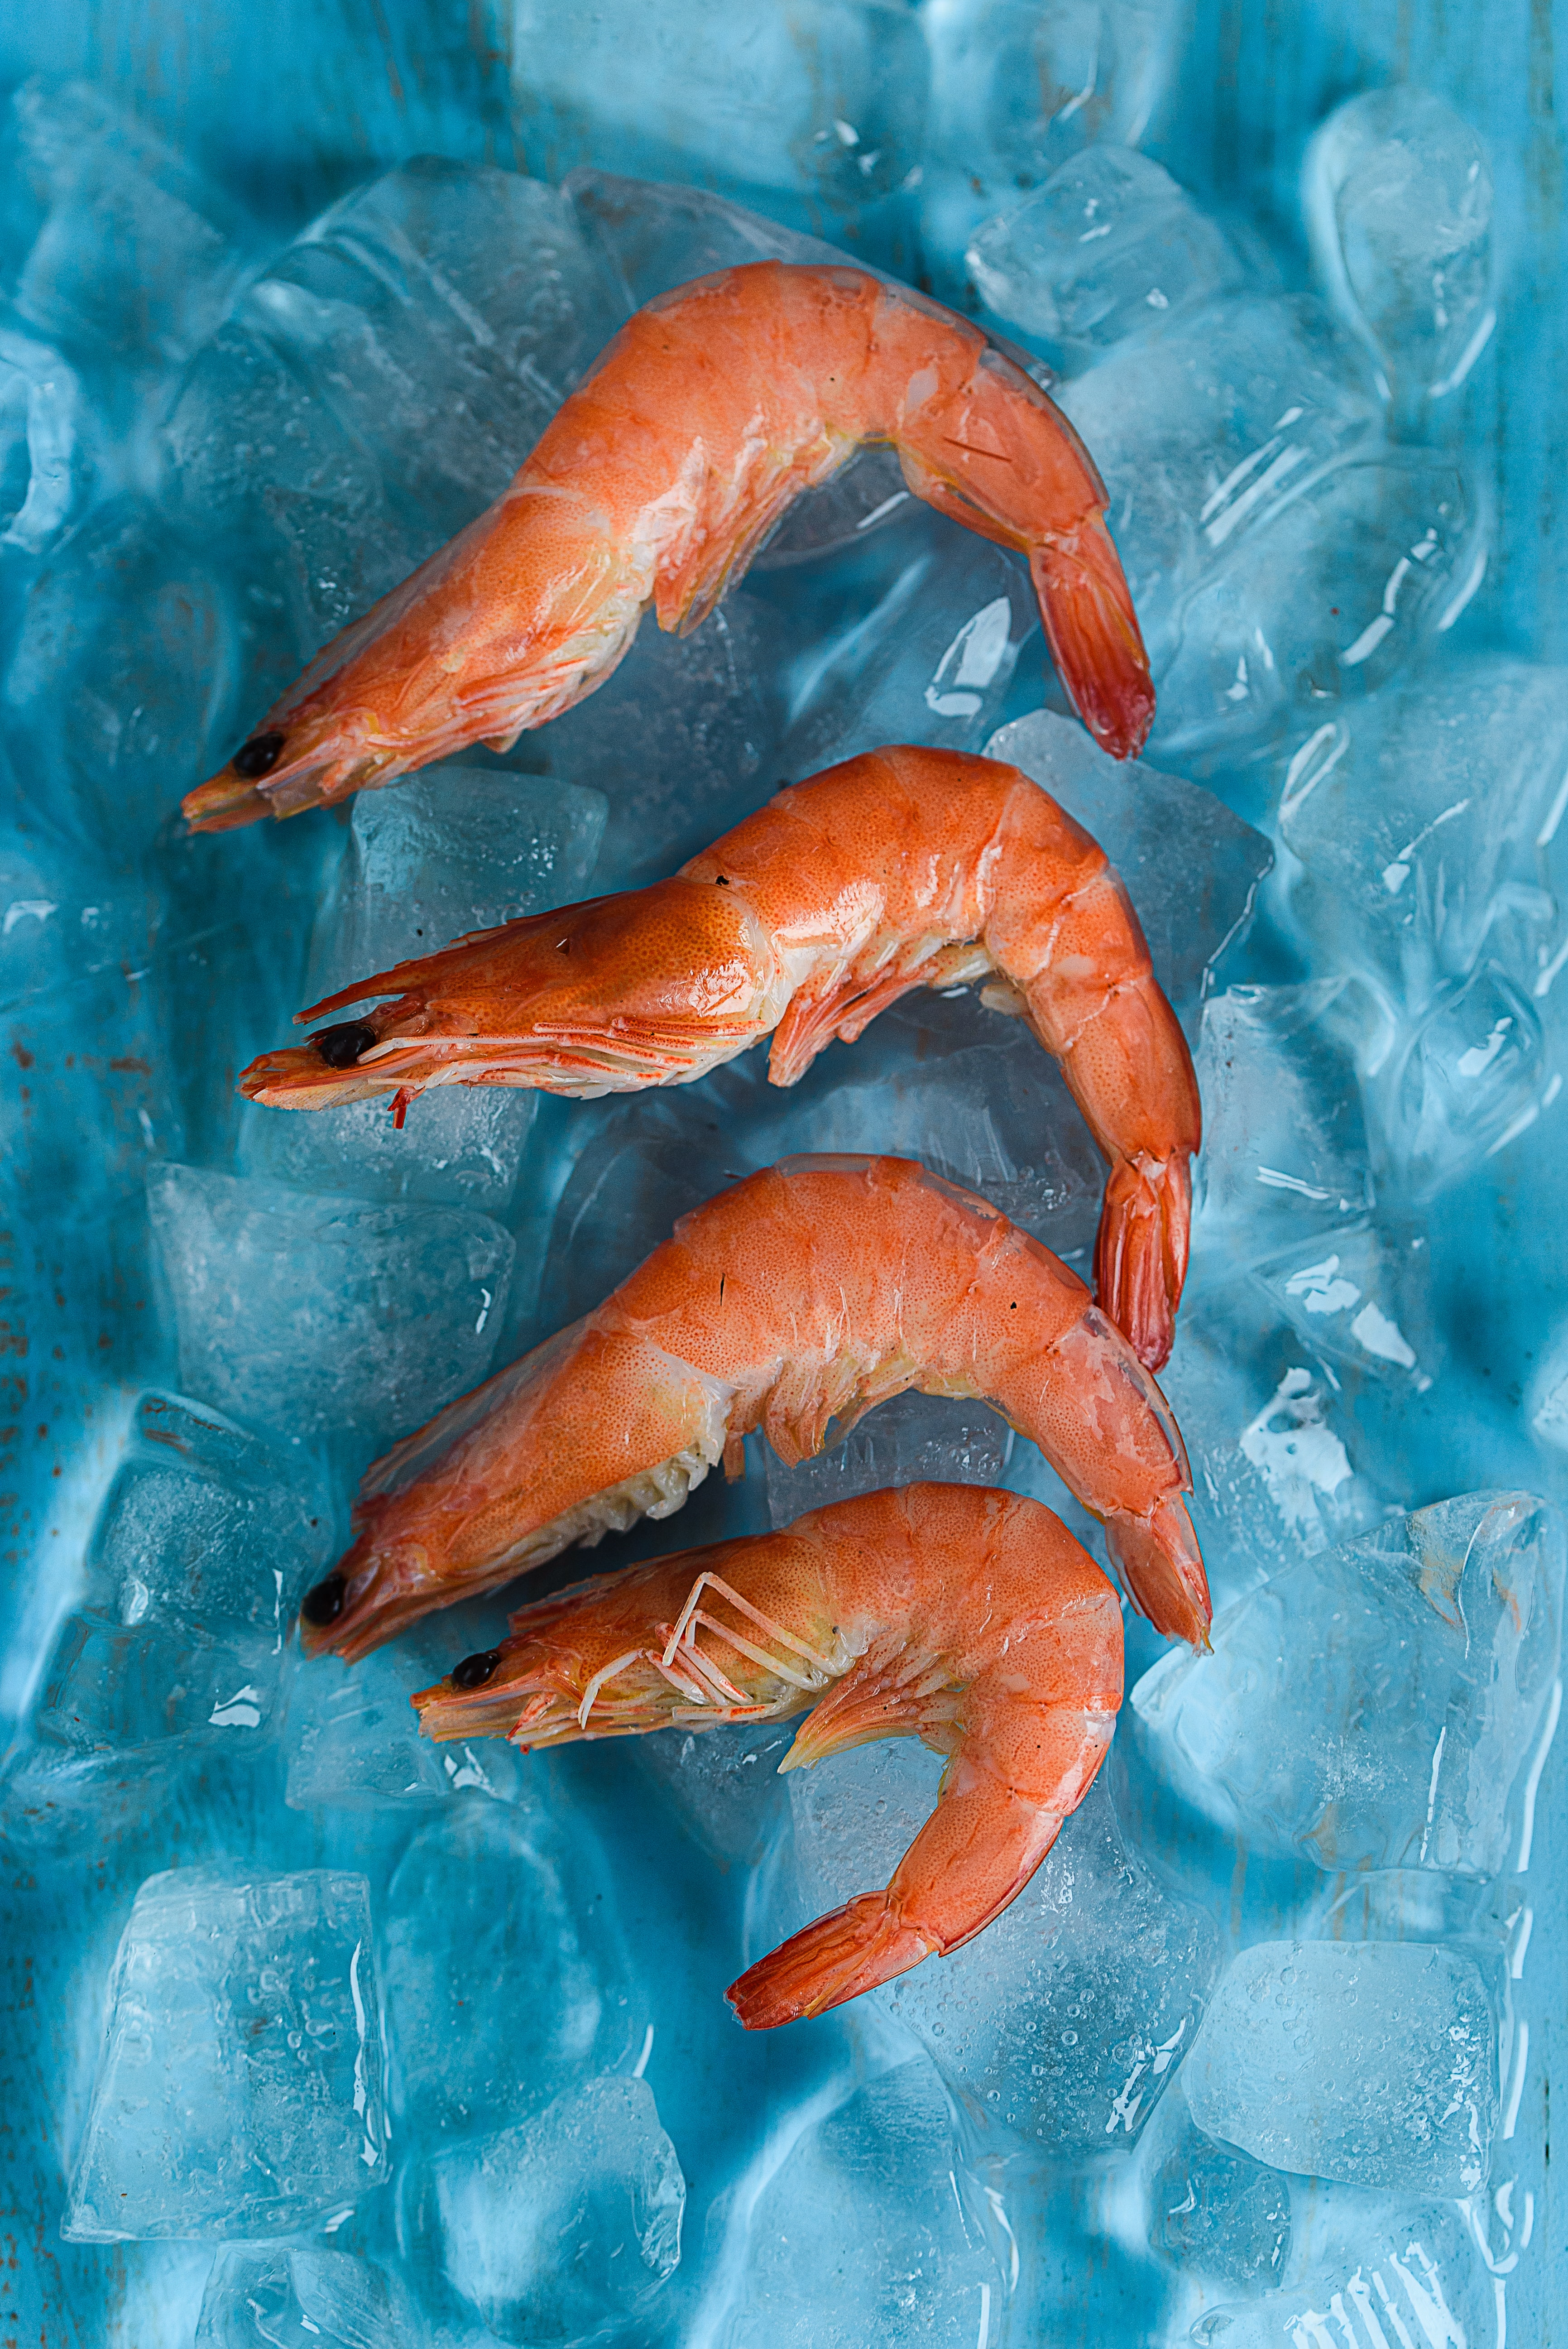 four shrimps on top of ice